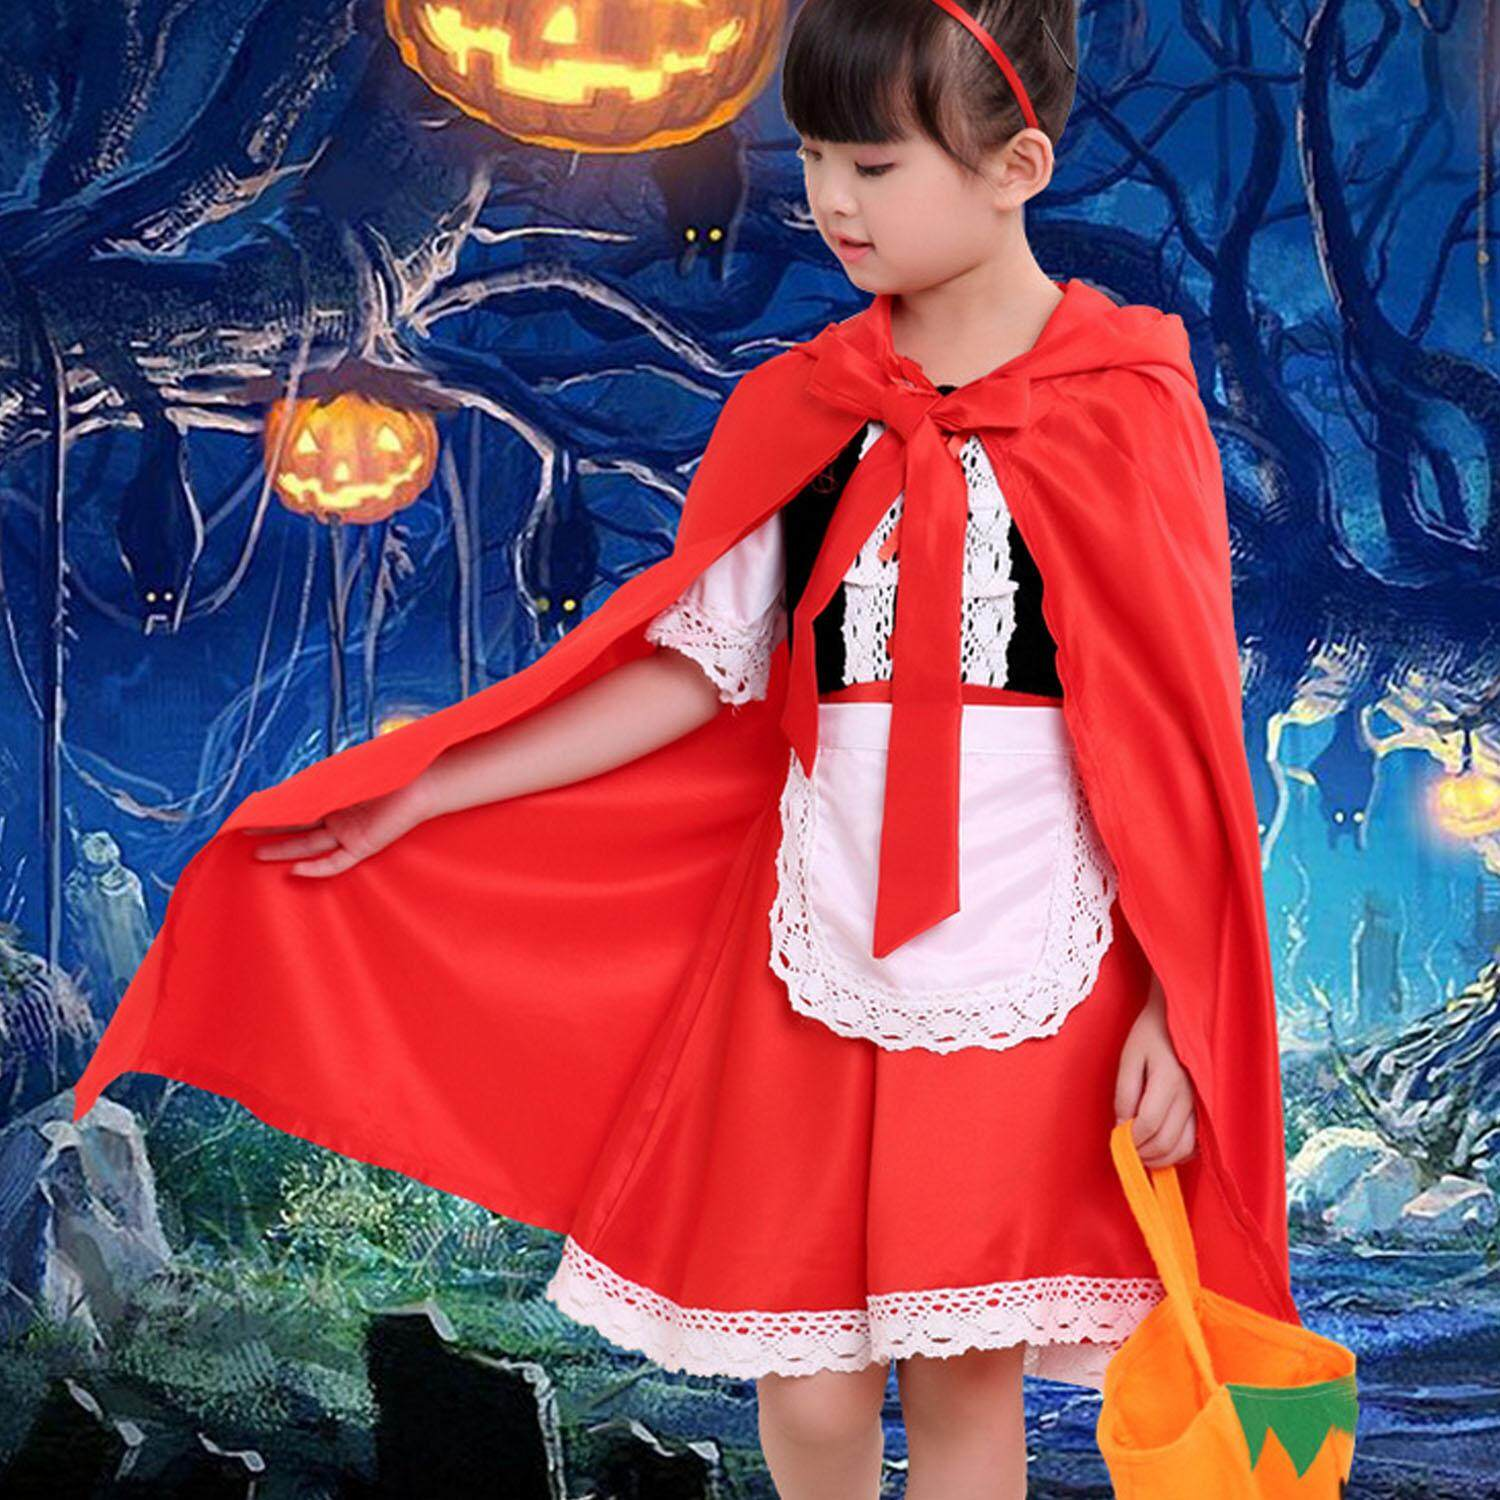 Fantasy Girls Little Red Riding Hood Costume + Pumpkin Bag + Headband for Halloween Night Festival Cosplay Costume Party 120cm Maxi Party Dress